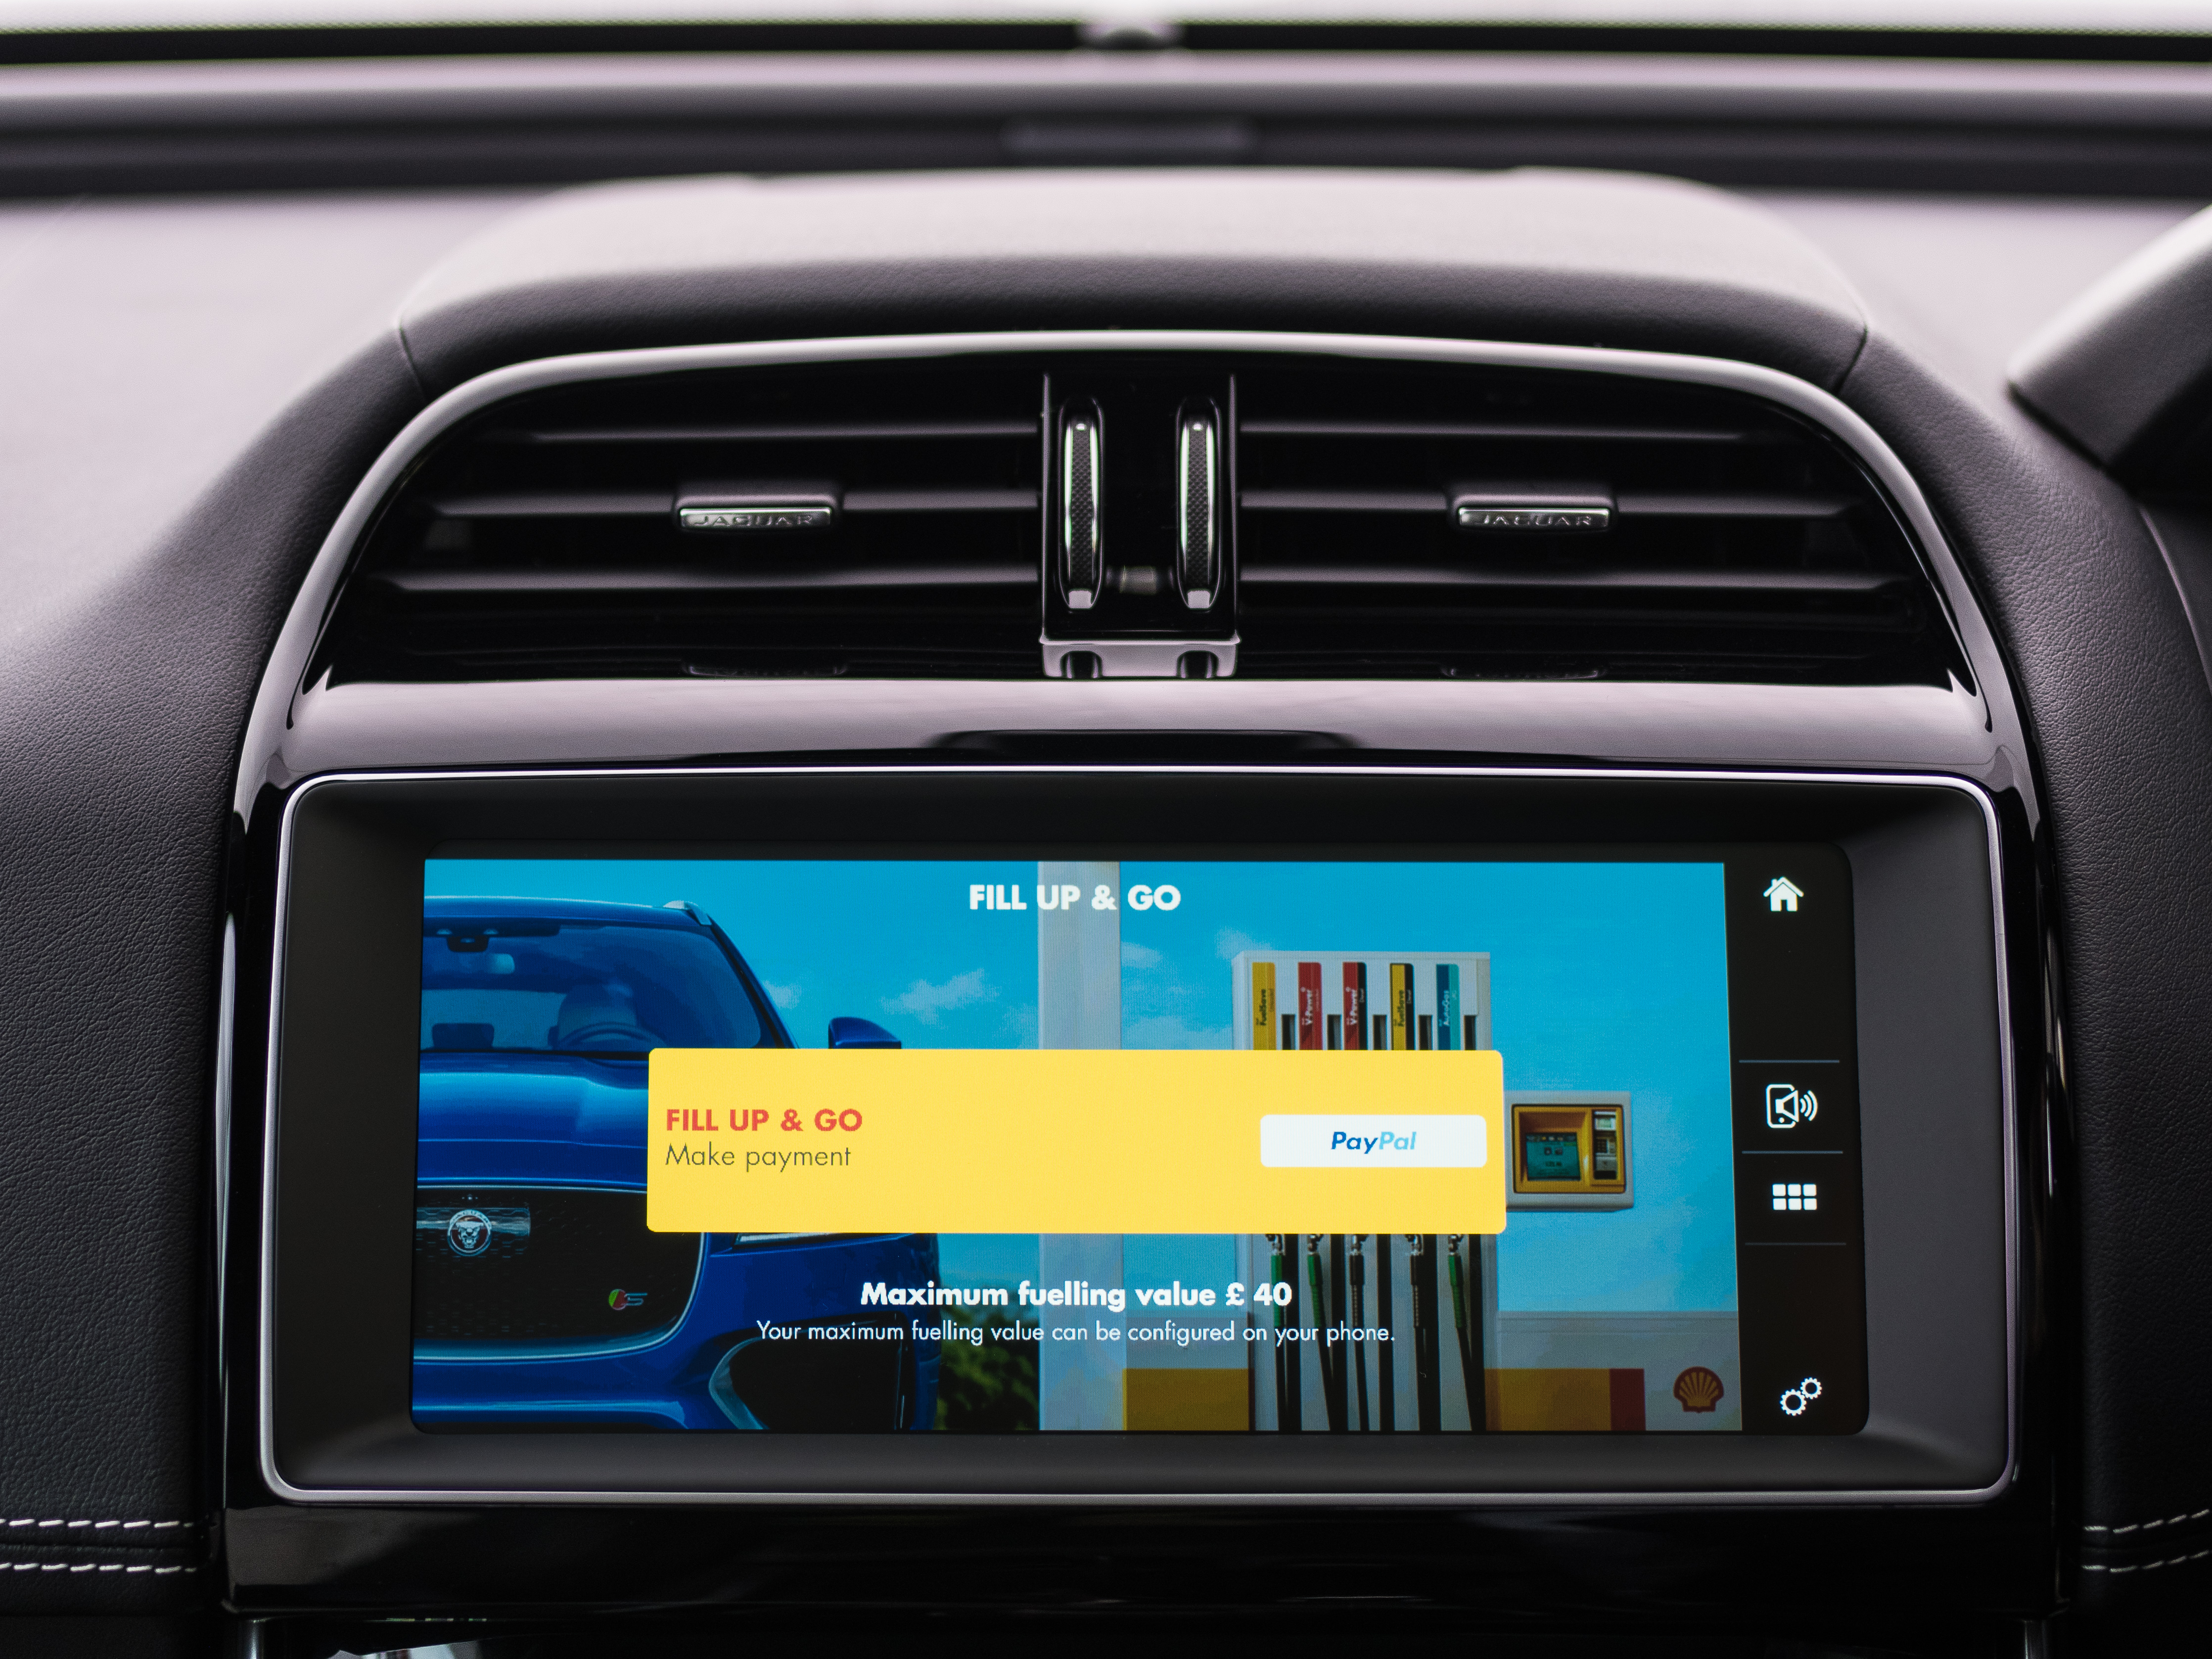 Cars for Sale Near Me Payments Best Of Jaguar Rolls Out In Car Payments App to Gas at Shell Stations